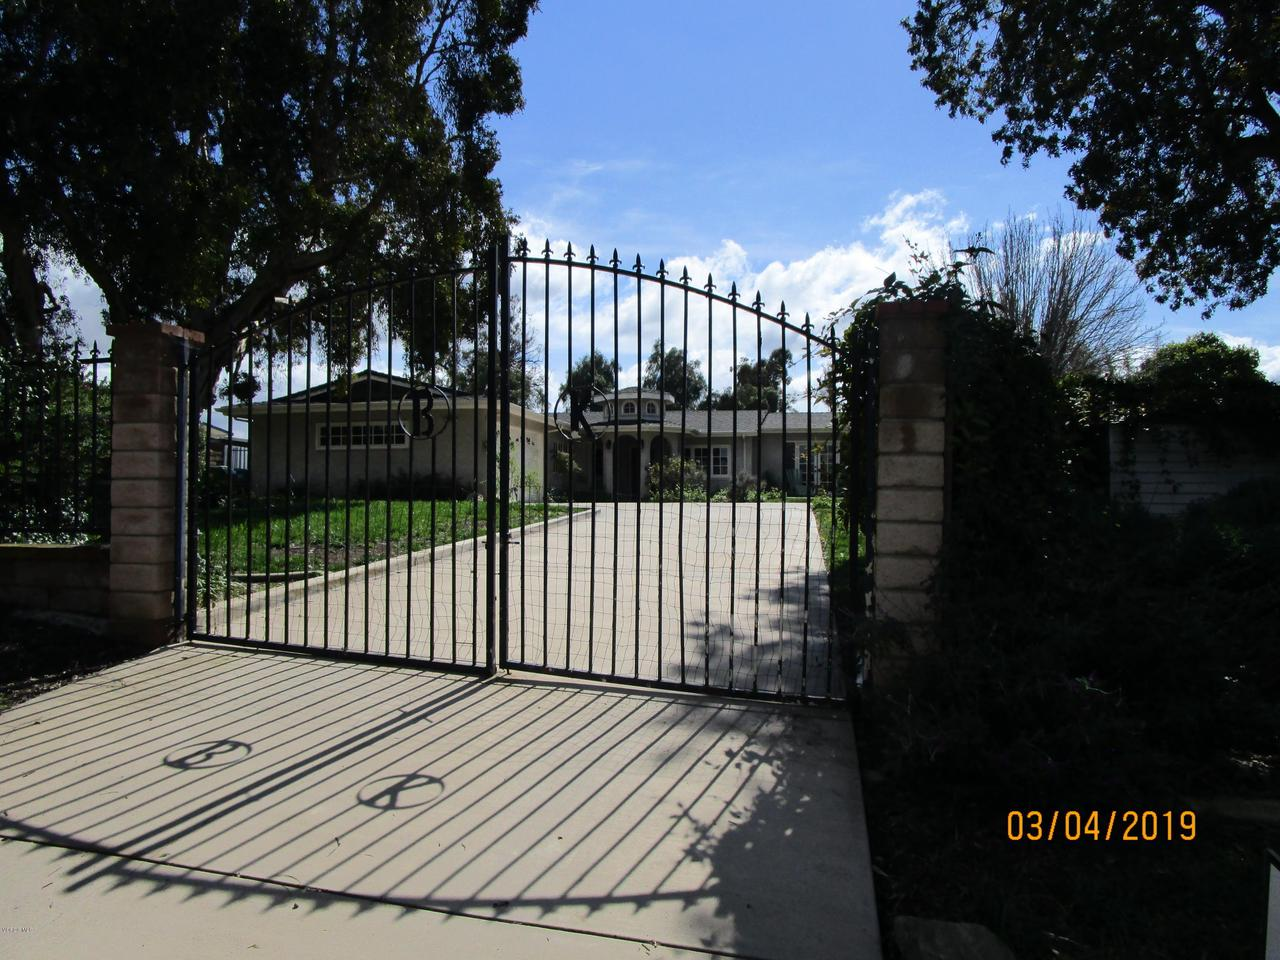 10720 TERNEZ, Moorpark, CA 93021 - Front Gate